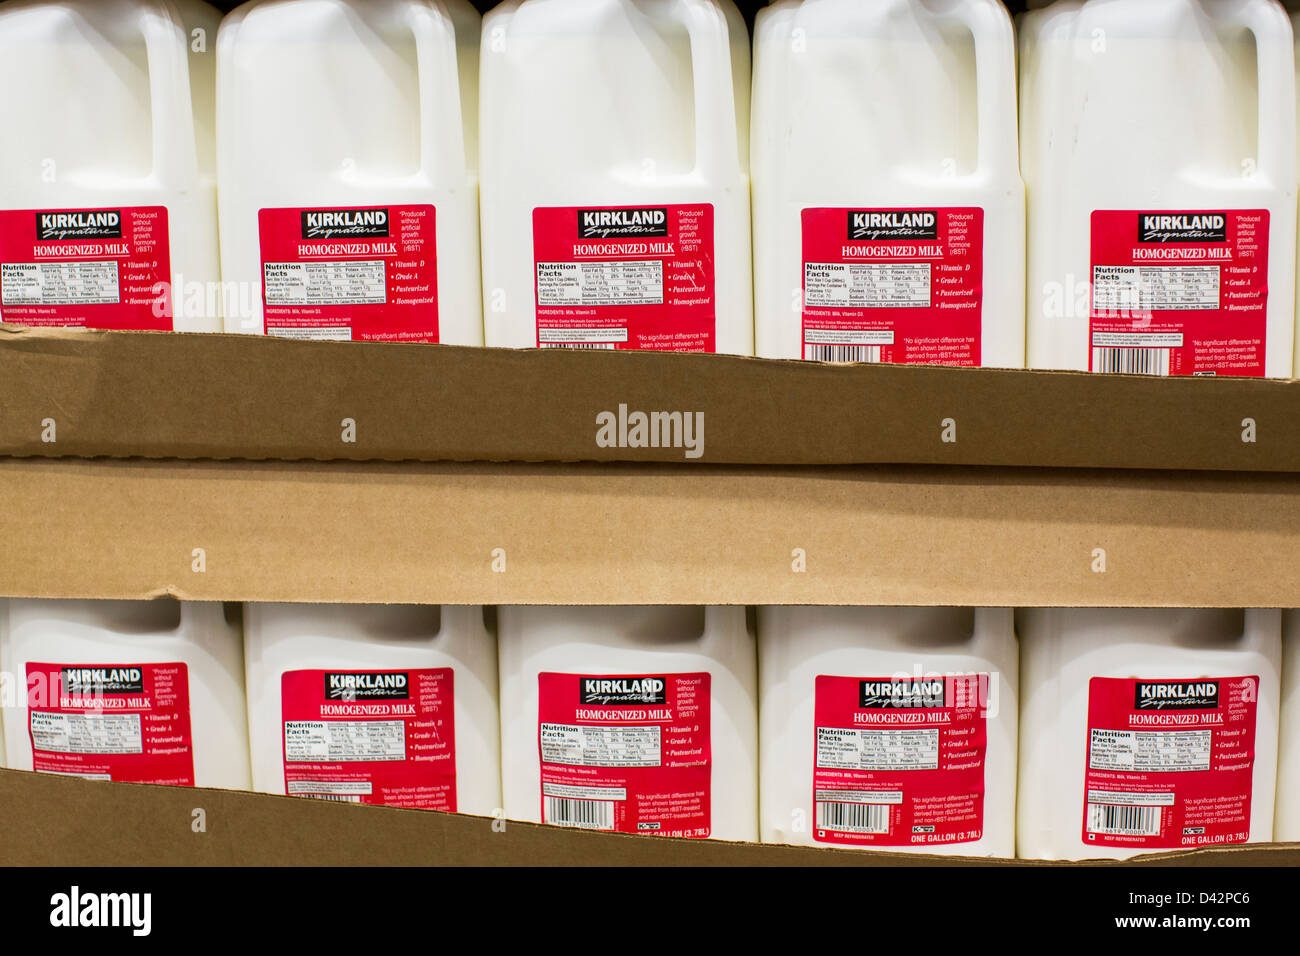 Kirkland milk on display at a costco wholesale warehouse club stock kirkland milk on display at a costco wholesale warehouse club stock photo 54151222 alamy thecheapjerseys Images